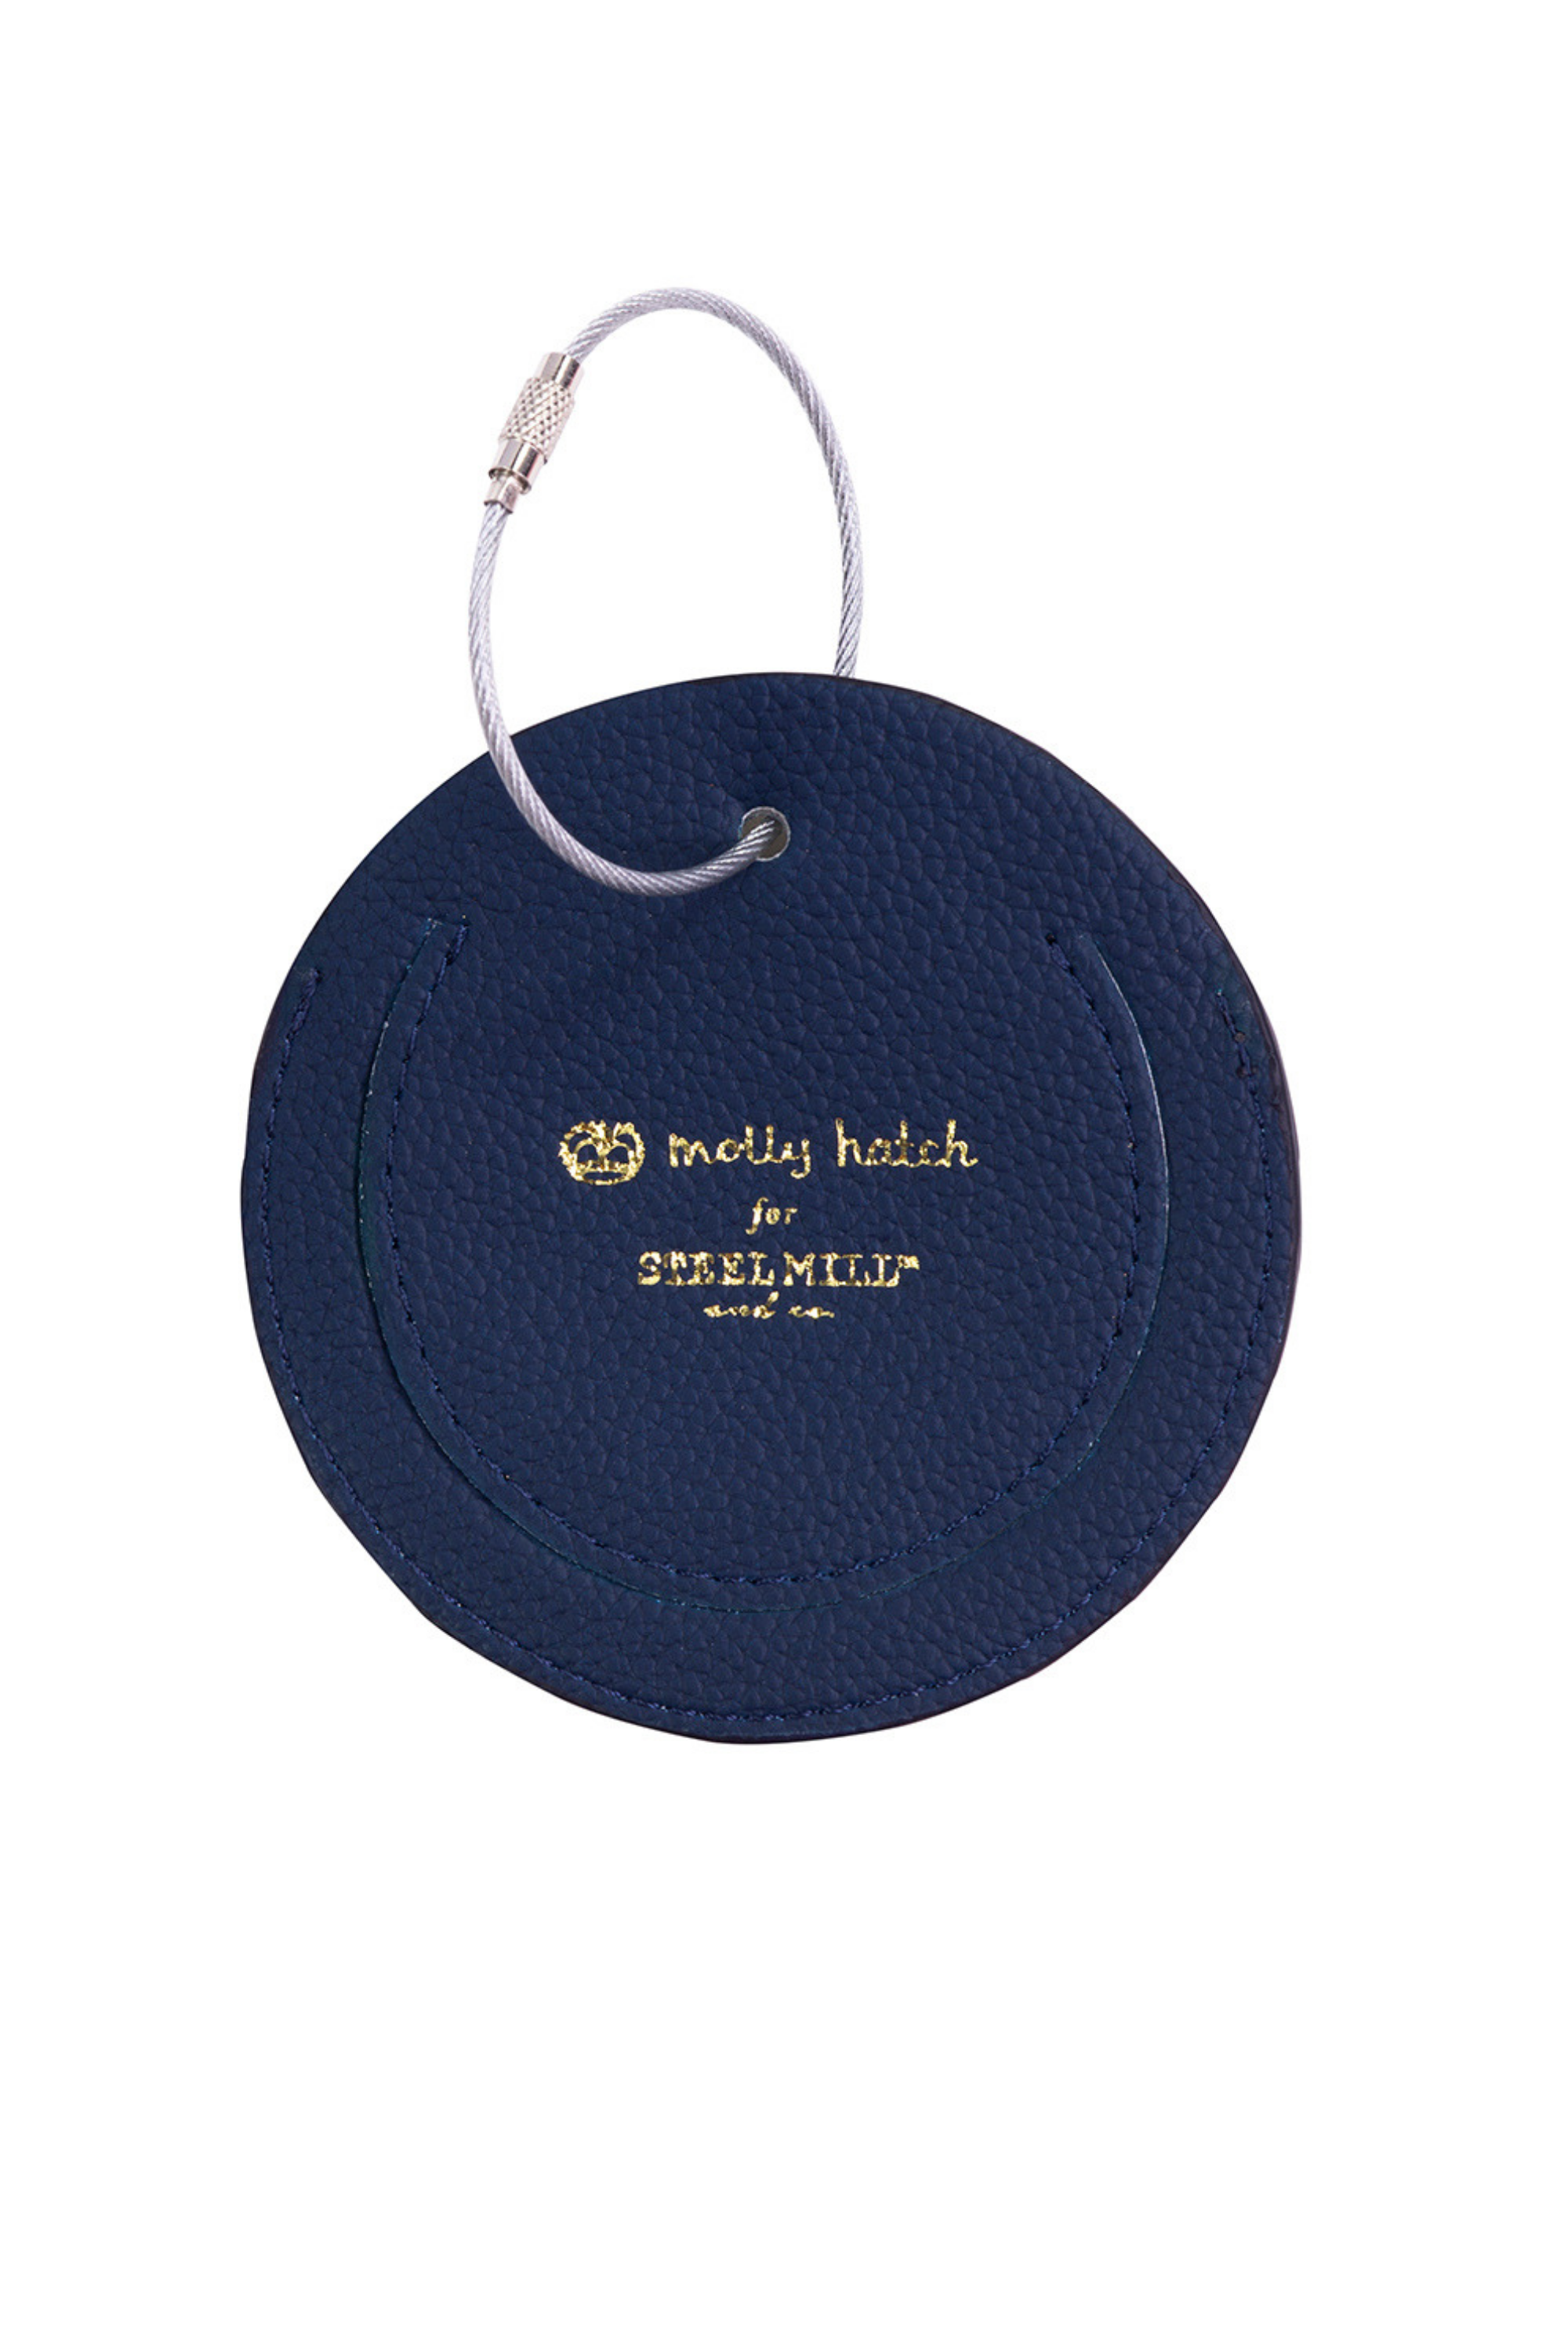 Seek Adventure Luggage Tag - Navy